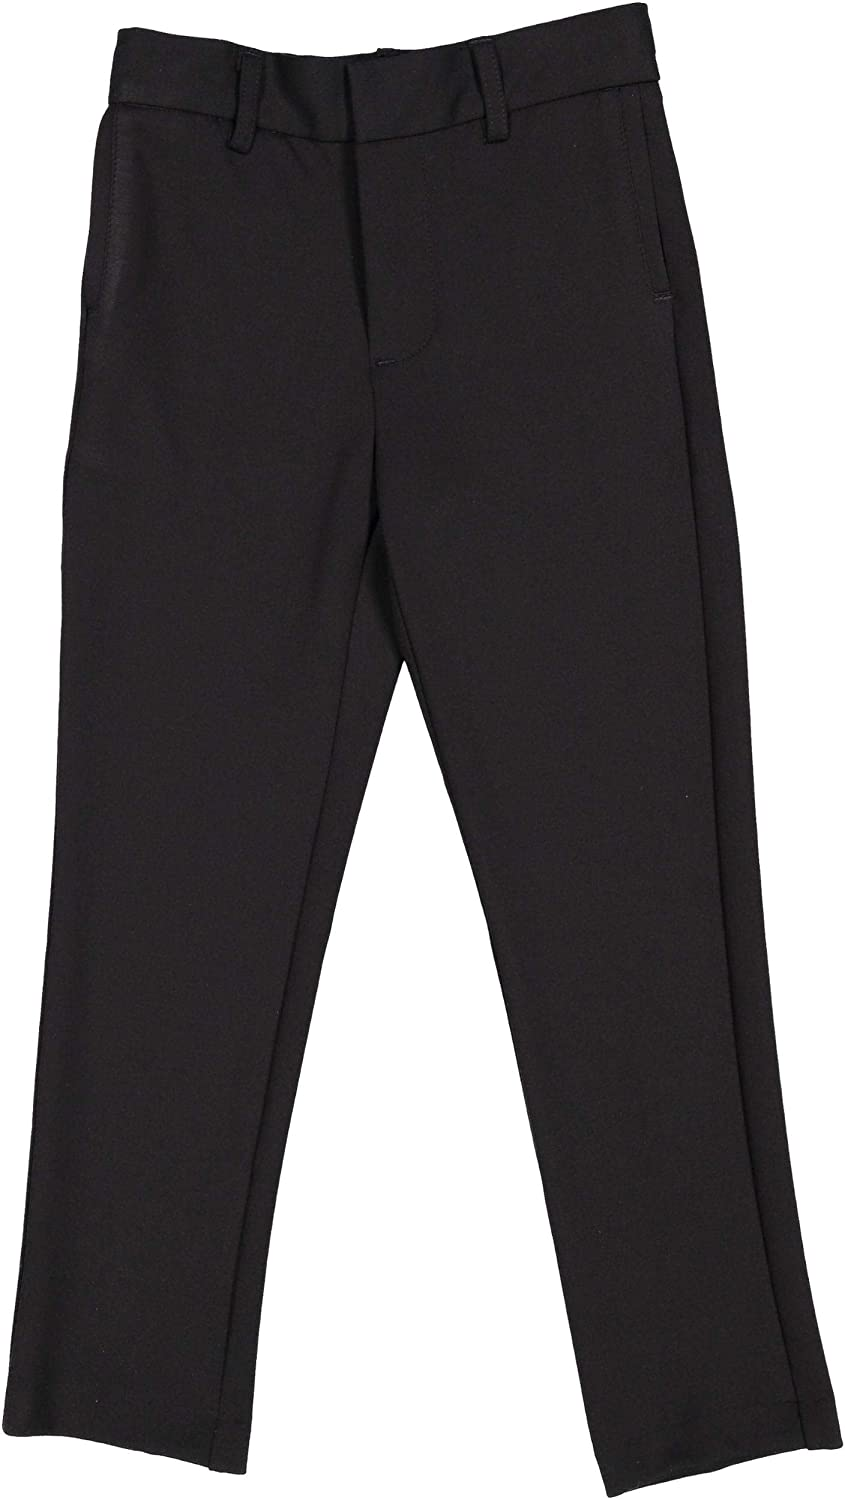 WA8CP304 Mocha Noir Boys Dress Pants